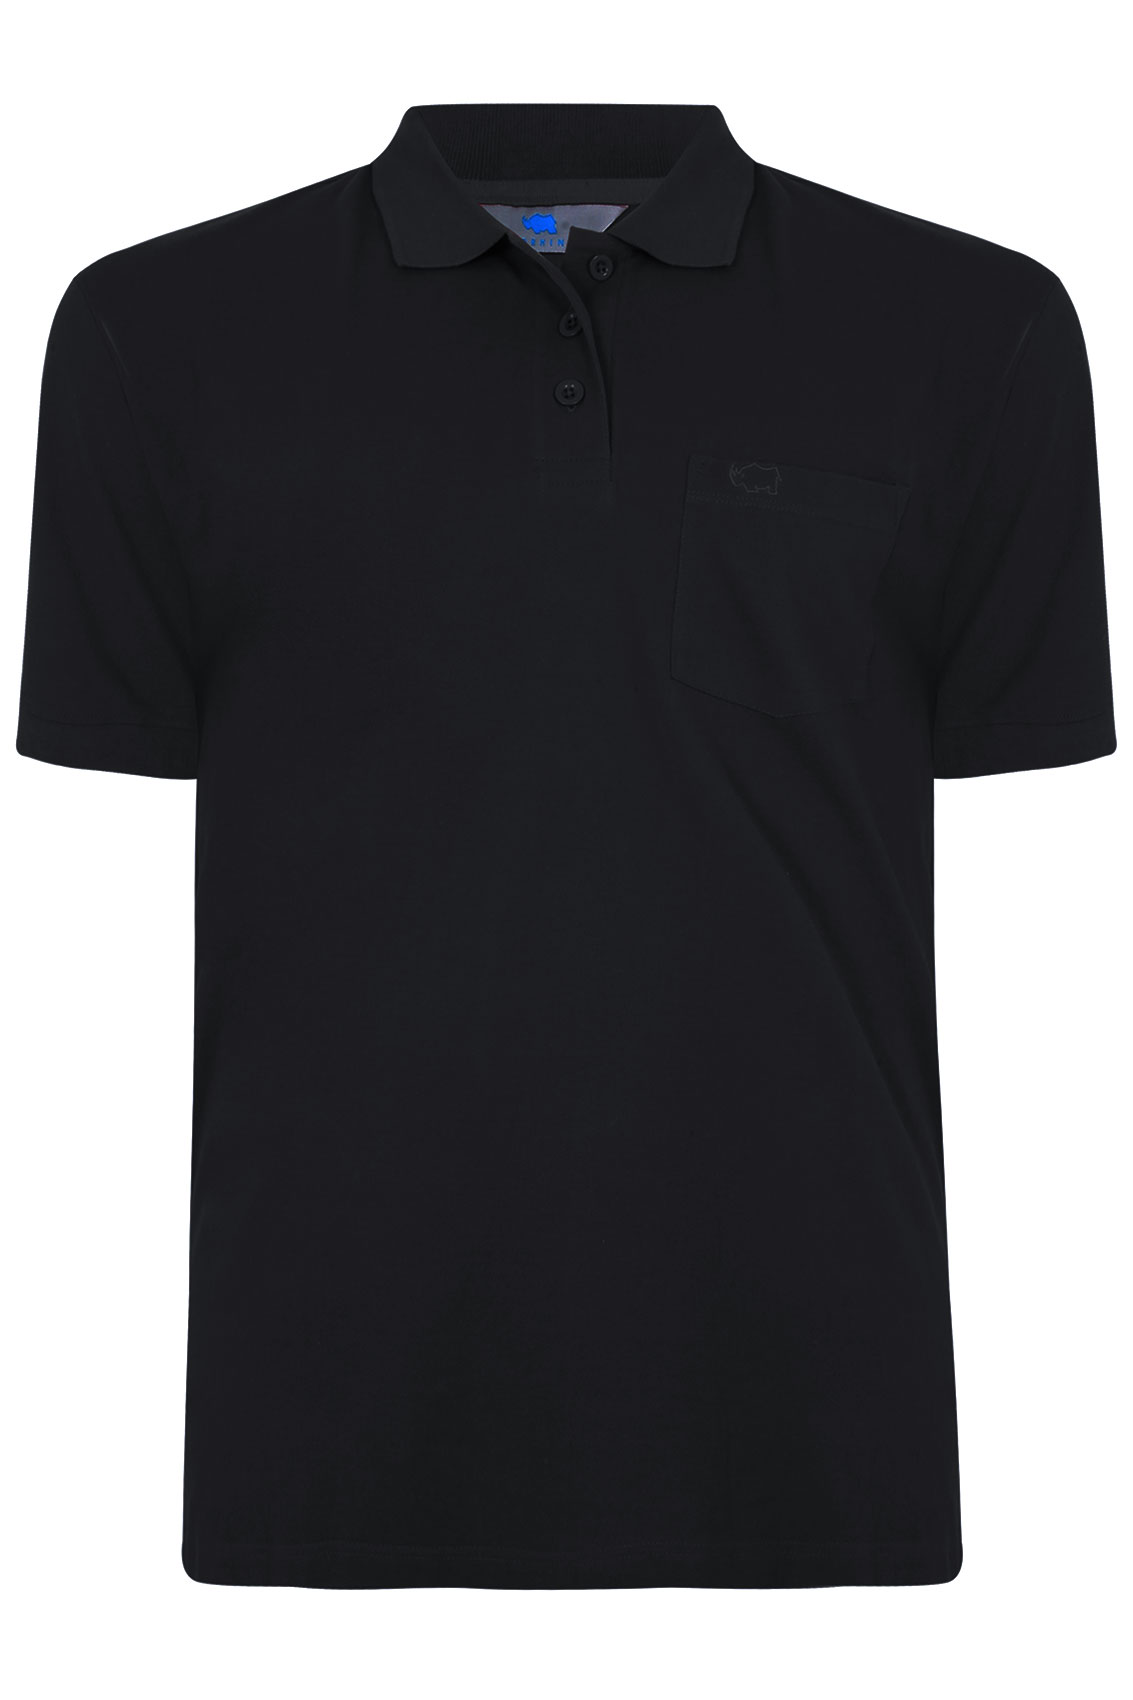 BadRhino Black Plain Polo Shirt With Chest Pocket Extra large sizes ... c8f580300561